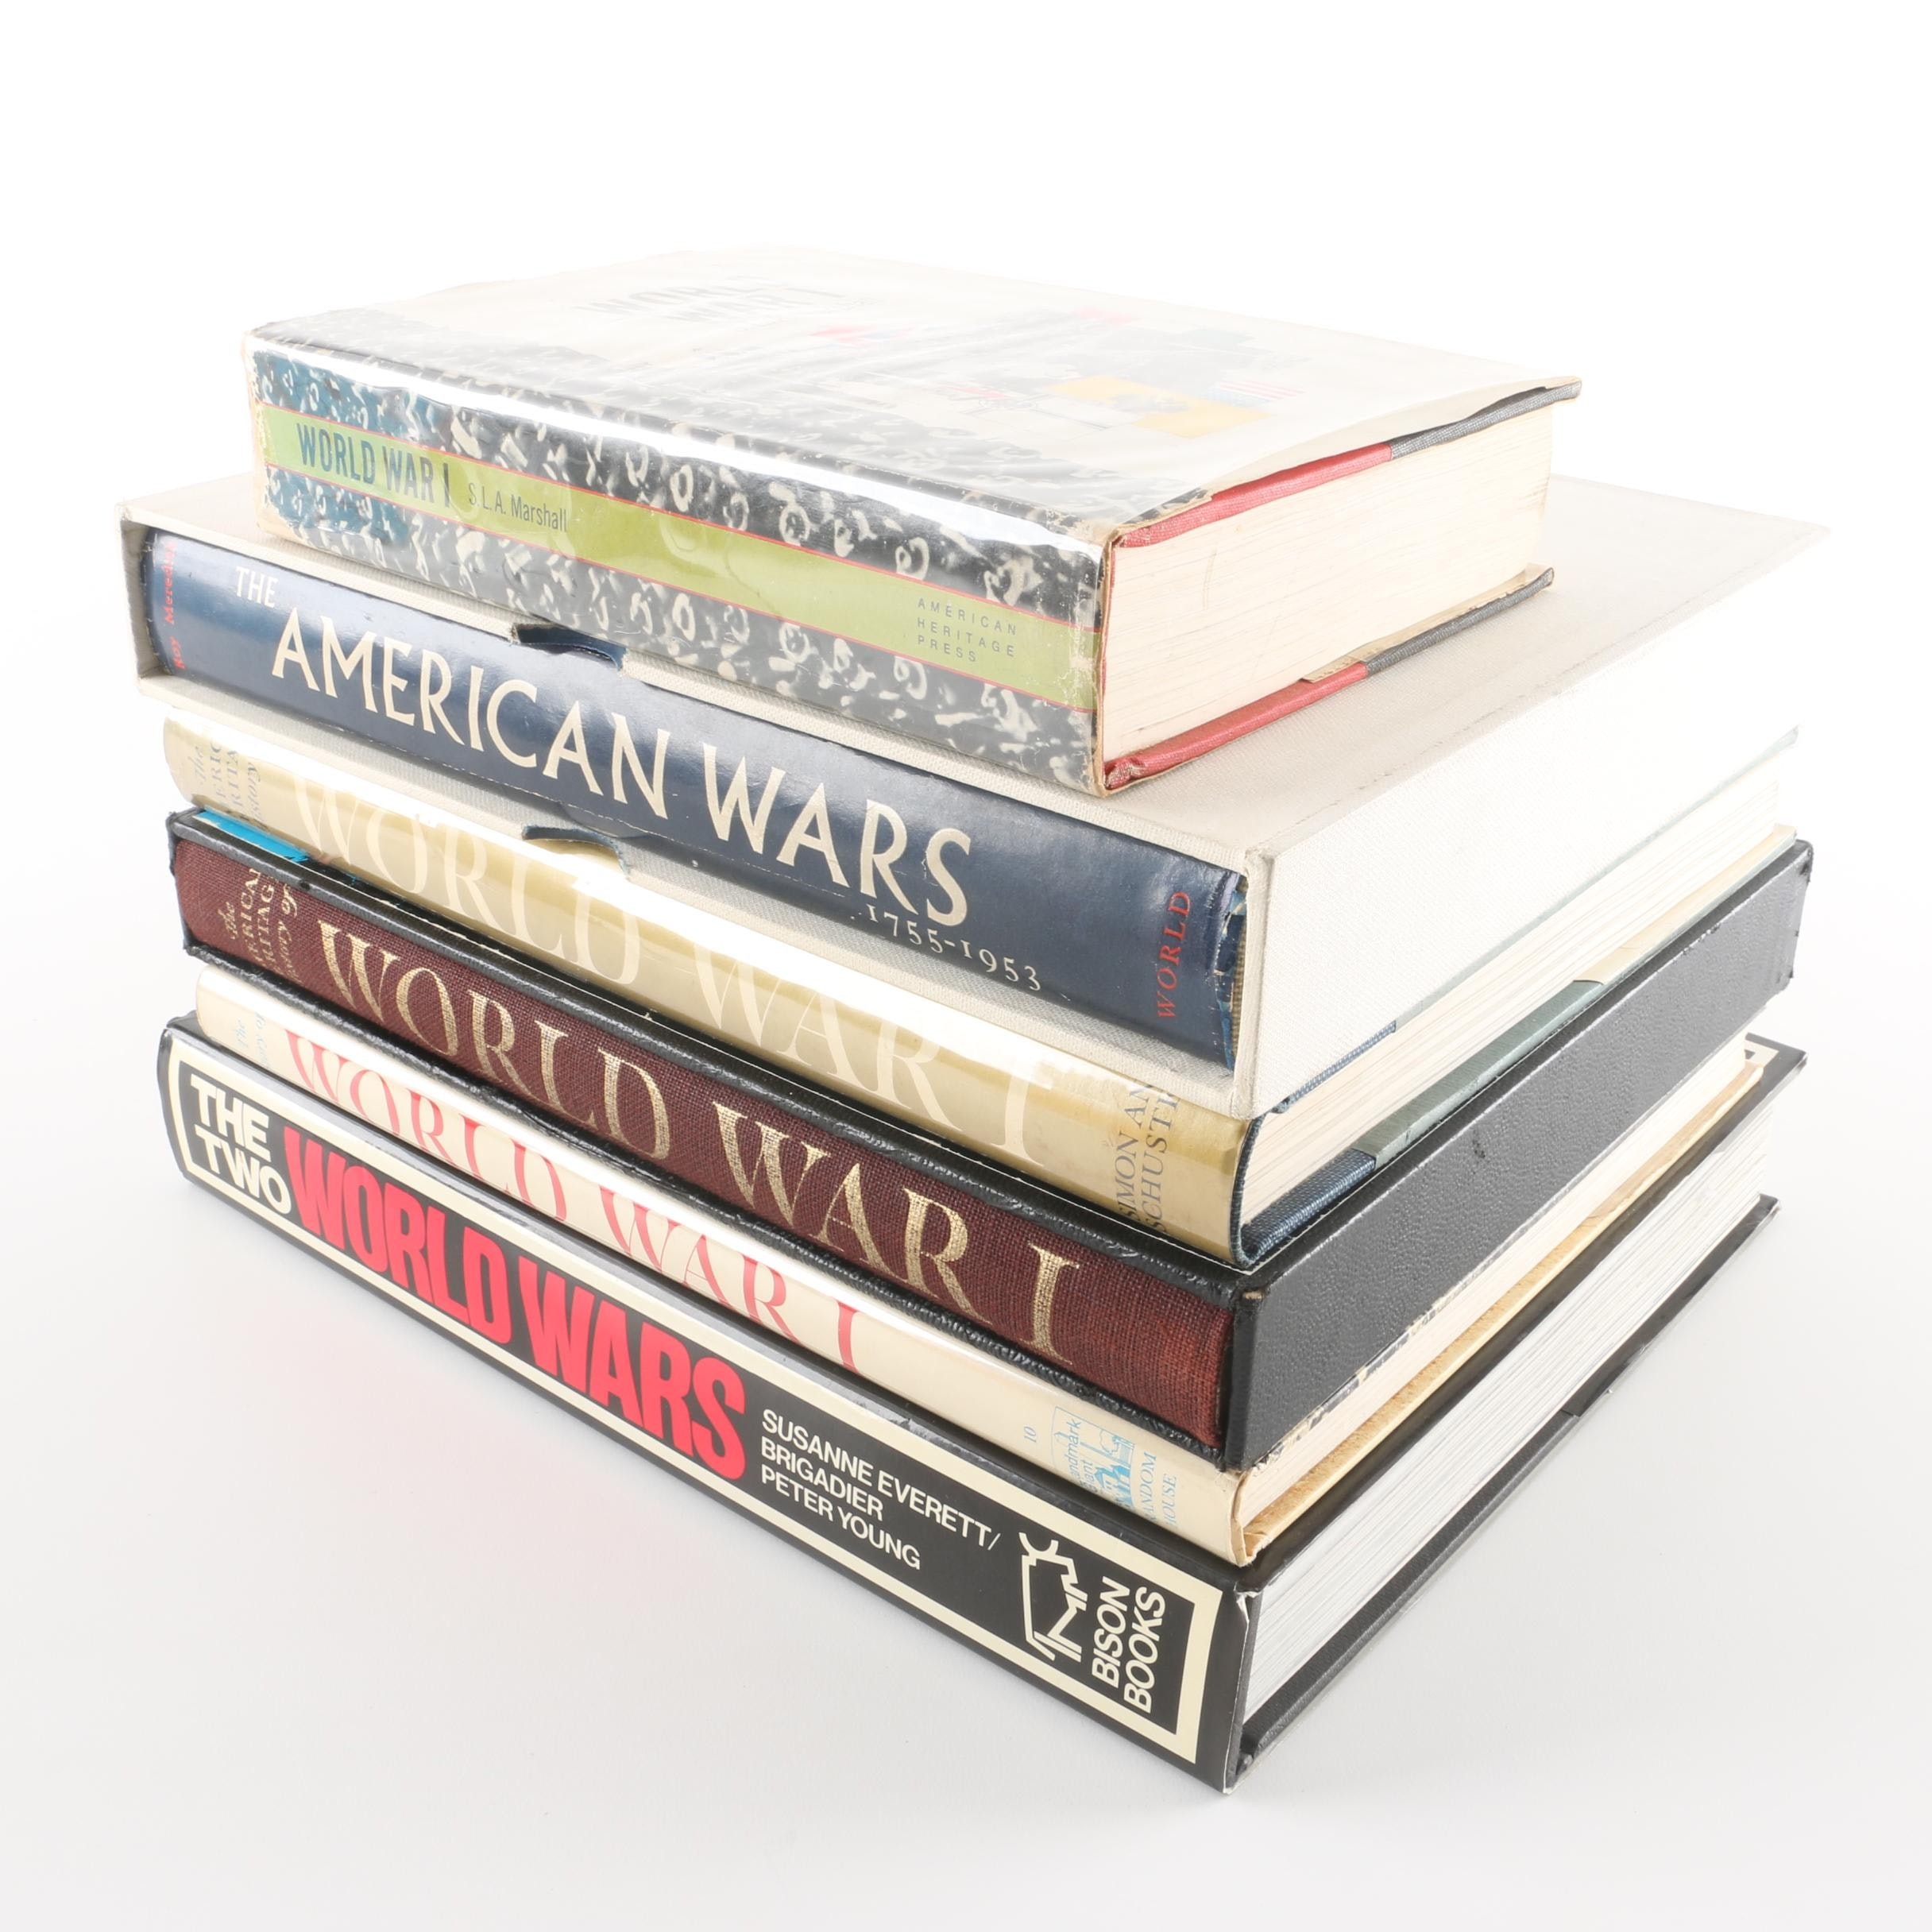 Books About American Wars